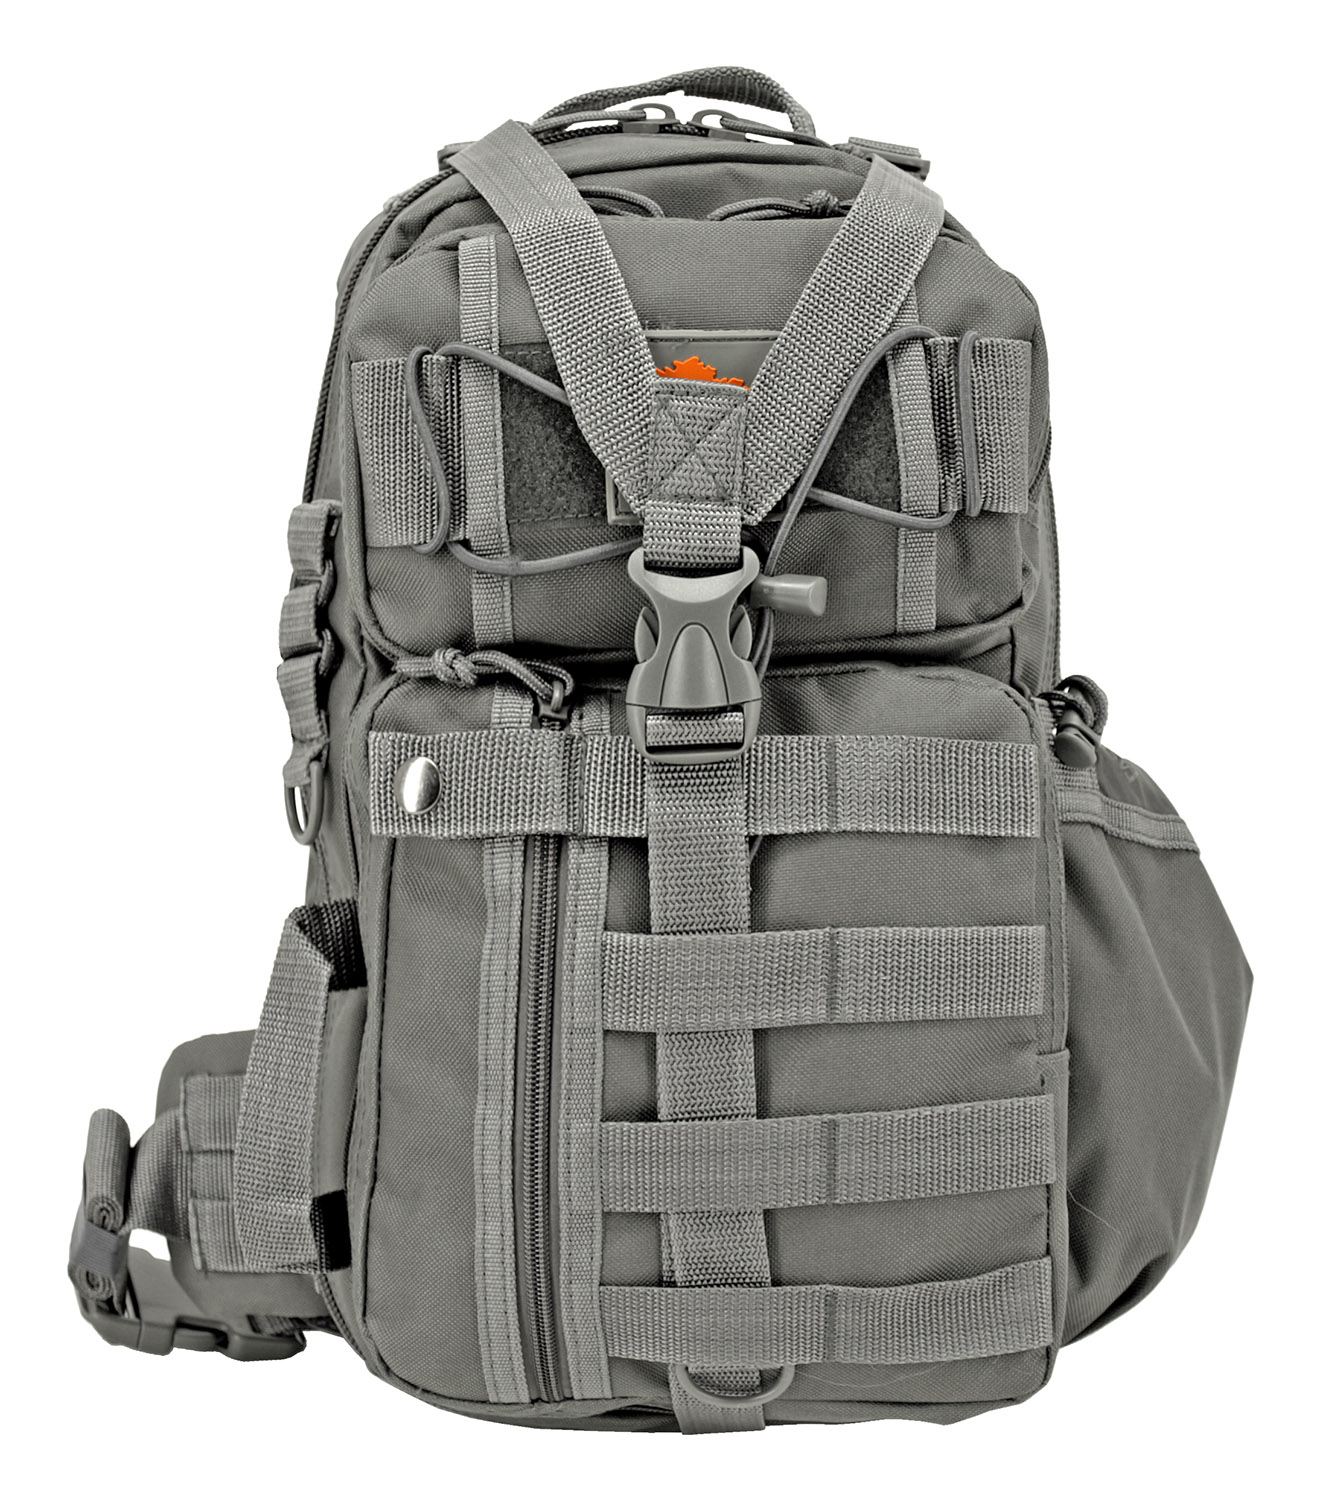 Tactical Readiness Sling Pack - Grey